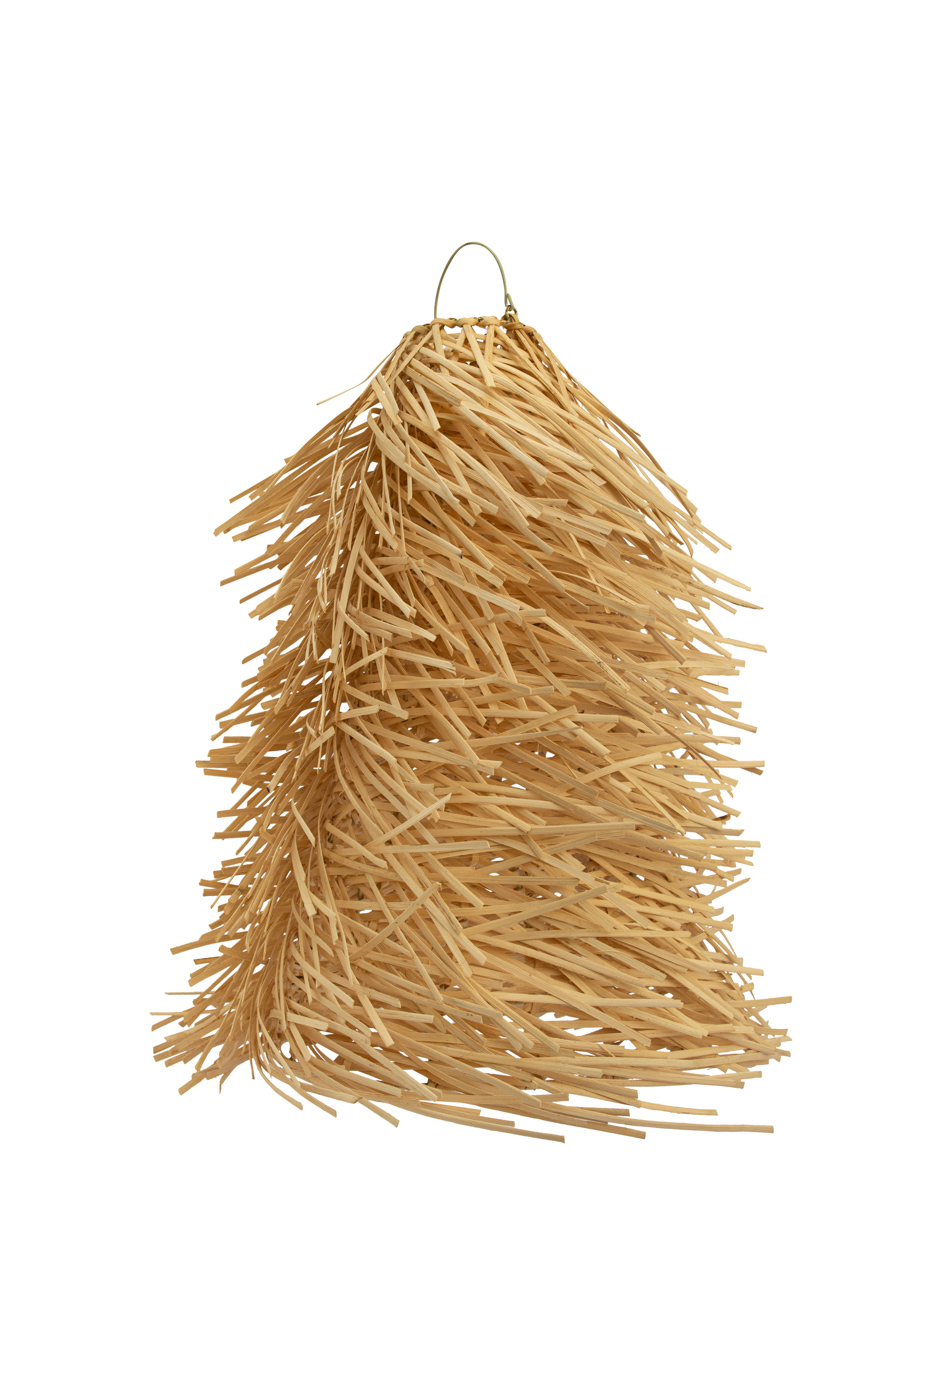 Pendant lamp in rattan with fringes, natural